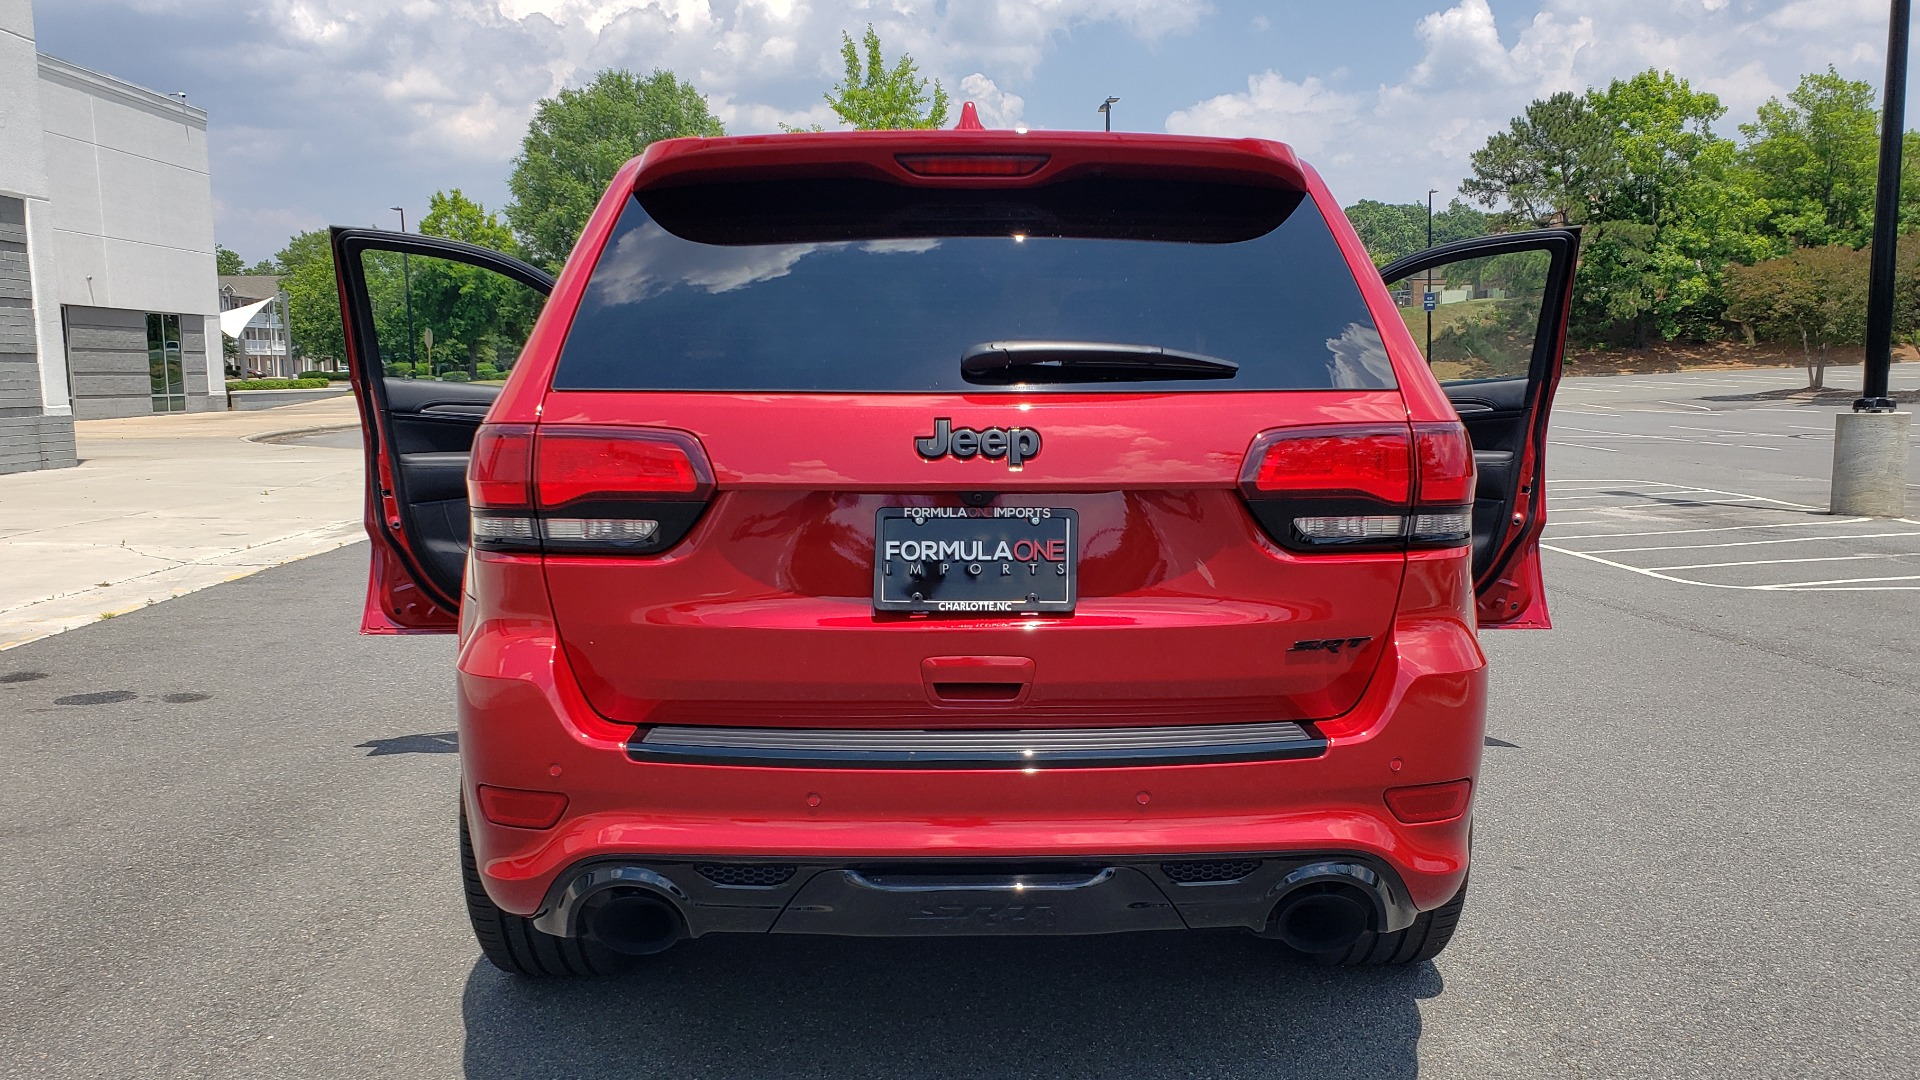 Used 2018 Jeep GRAND CHEROKEE SRT 4X4 / 6.4L HEMI (475HP) / NAV / SUNROOF / H/K SND / REARVIEW for sale Sold at Formula Imports in Charlotte NC 28227 37